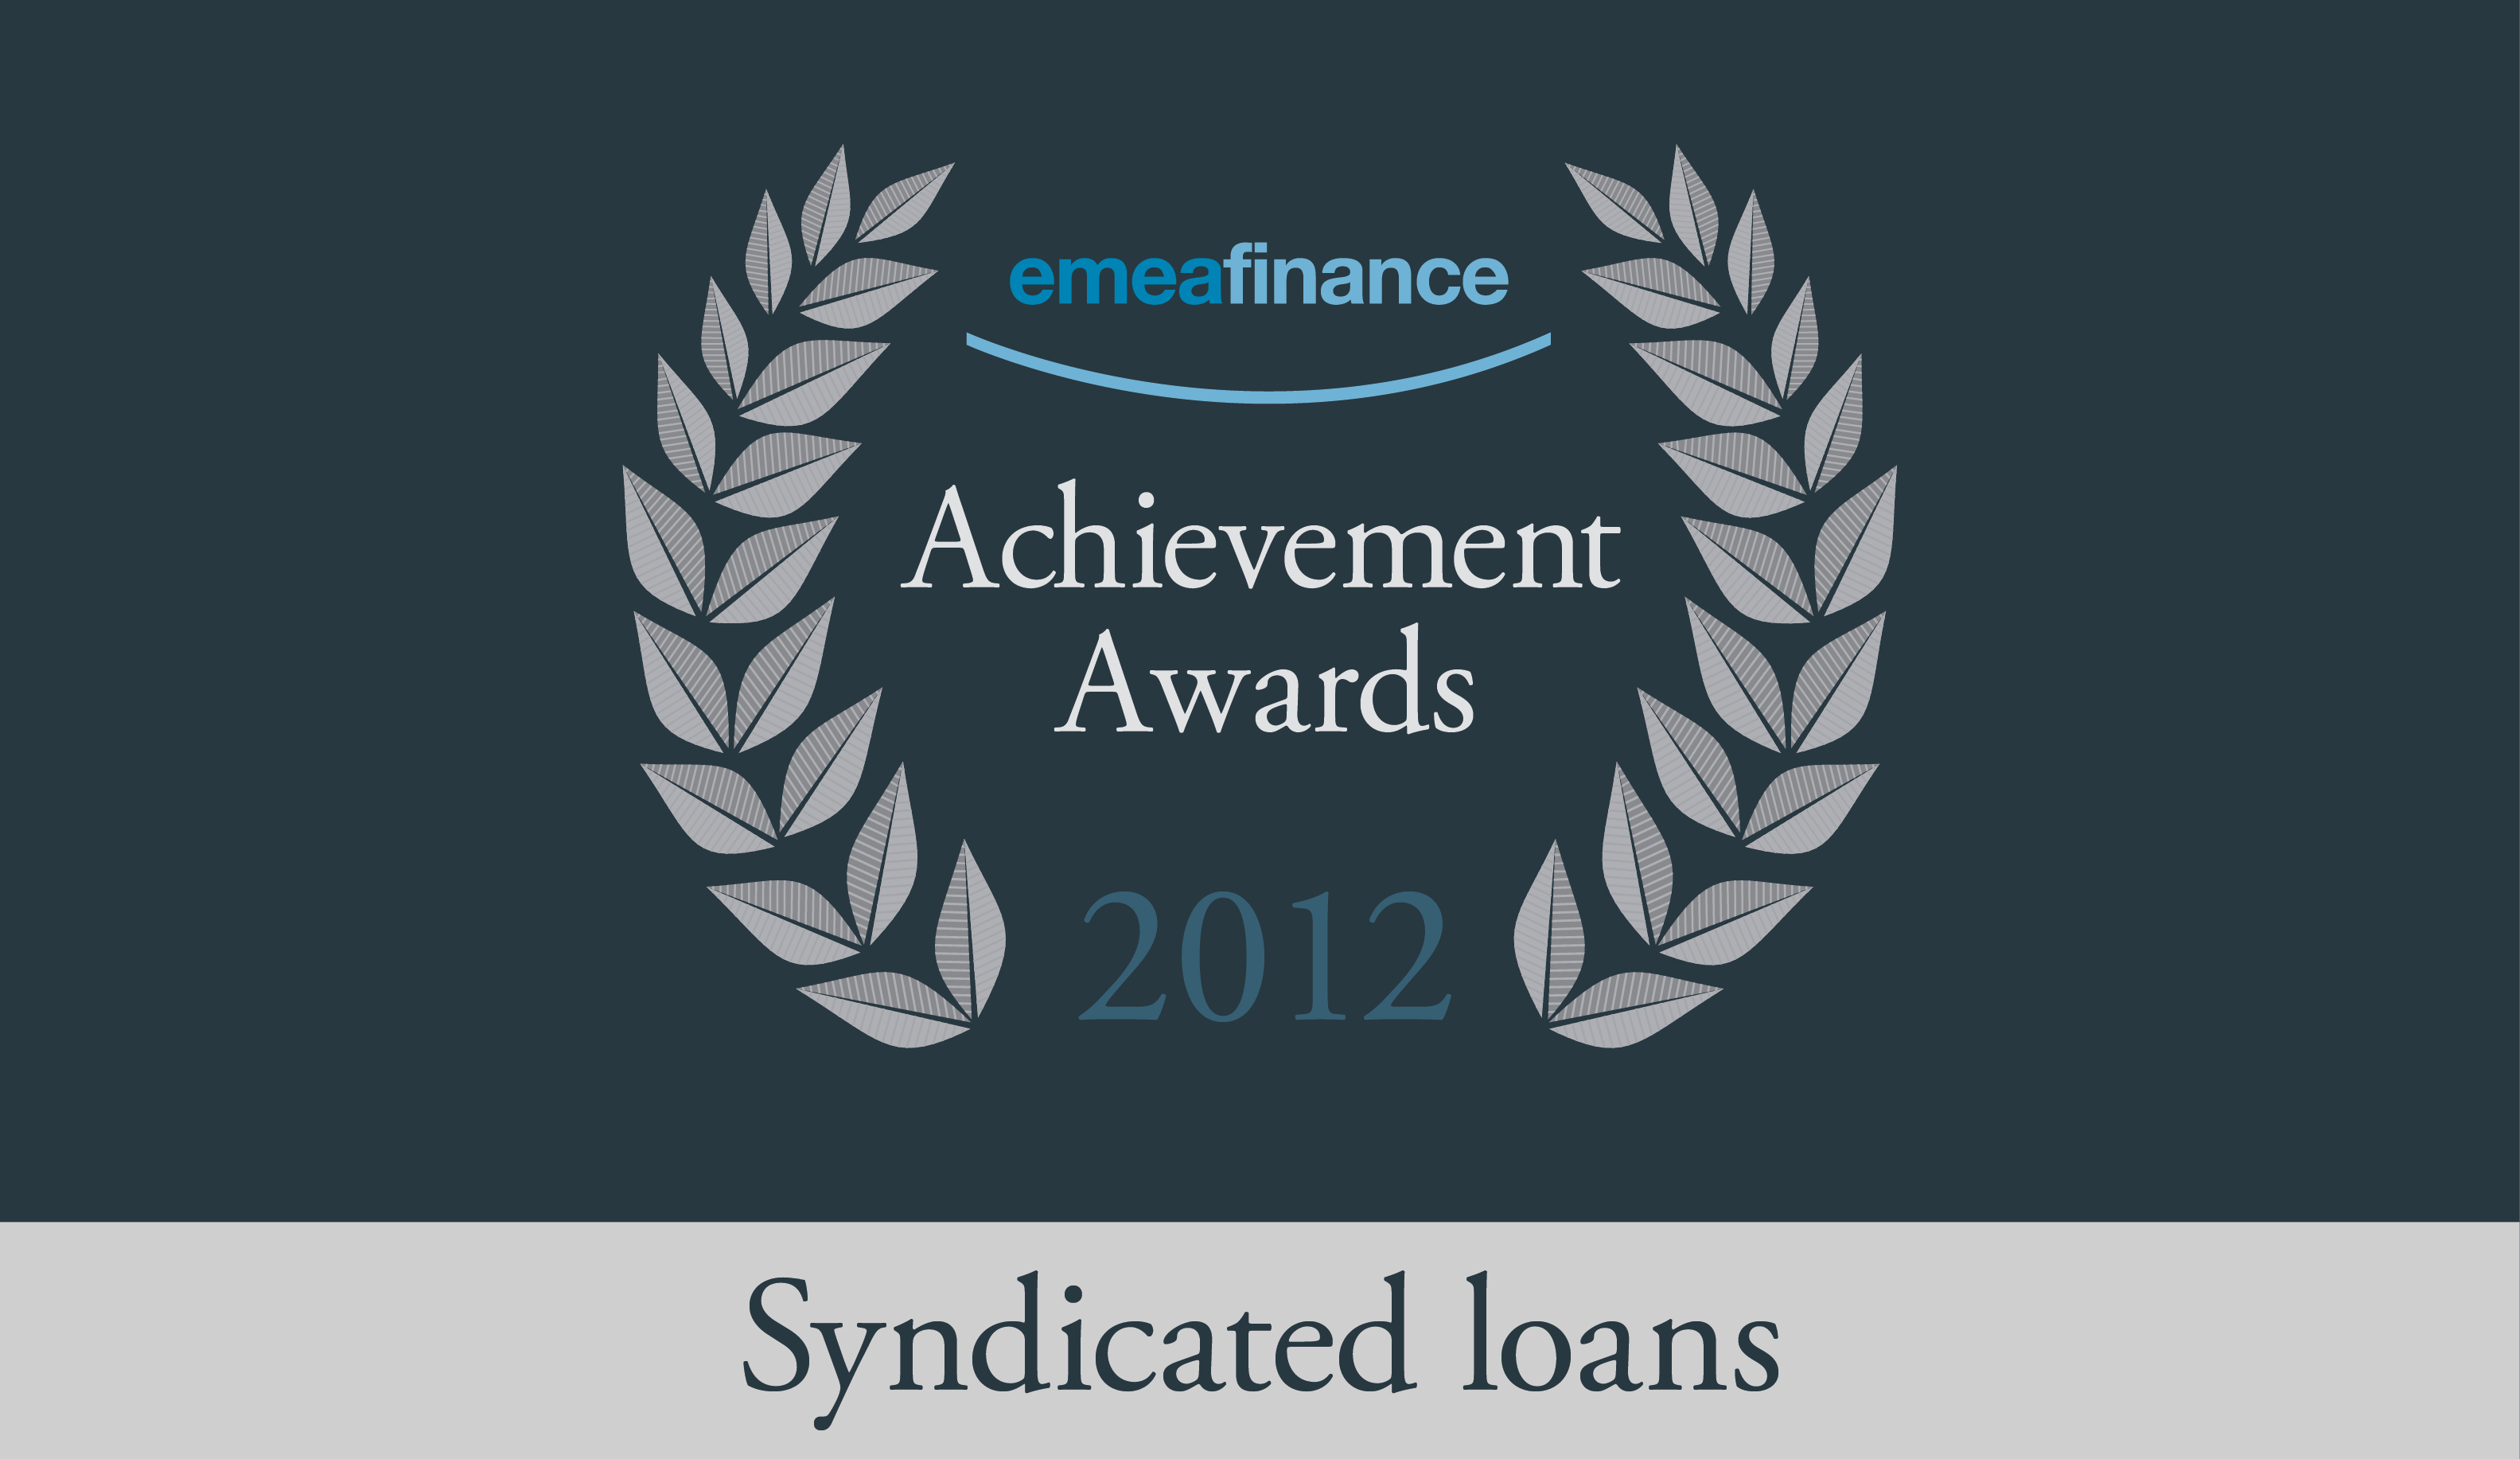 Achievement Awards 2012: Syndicated loans